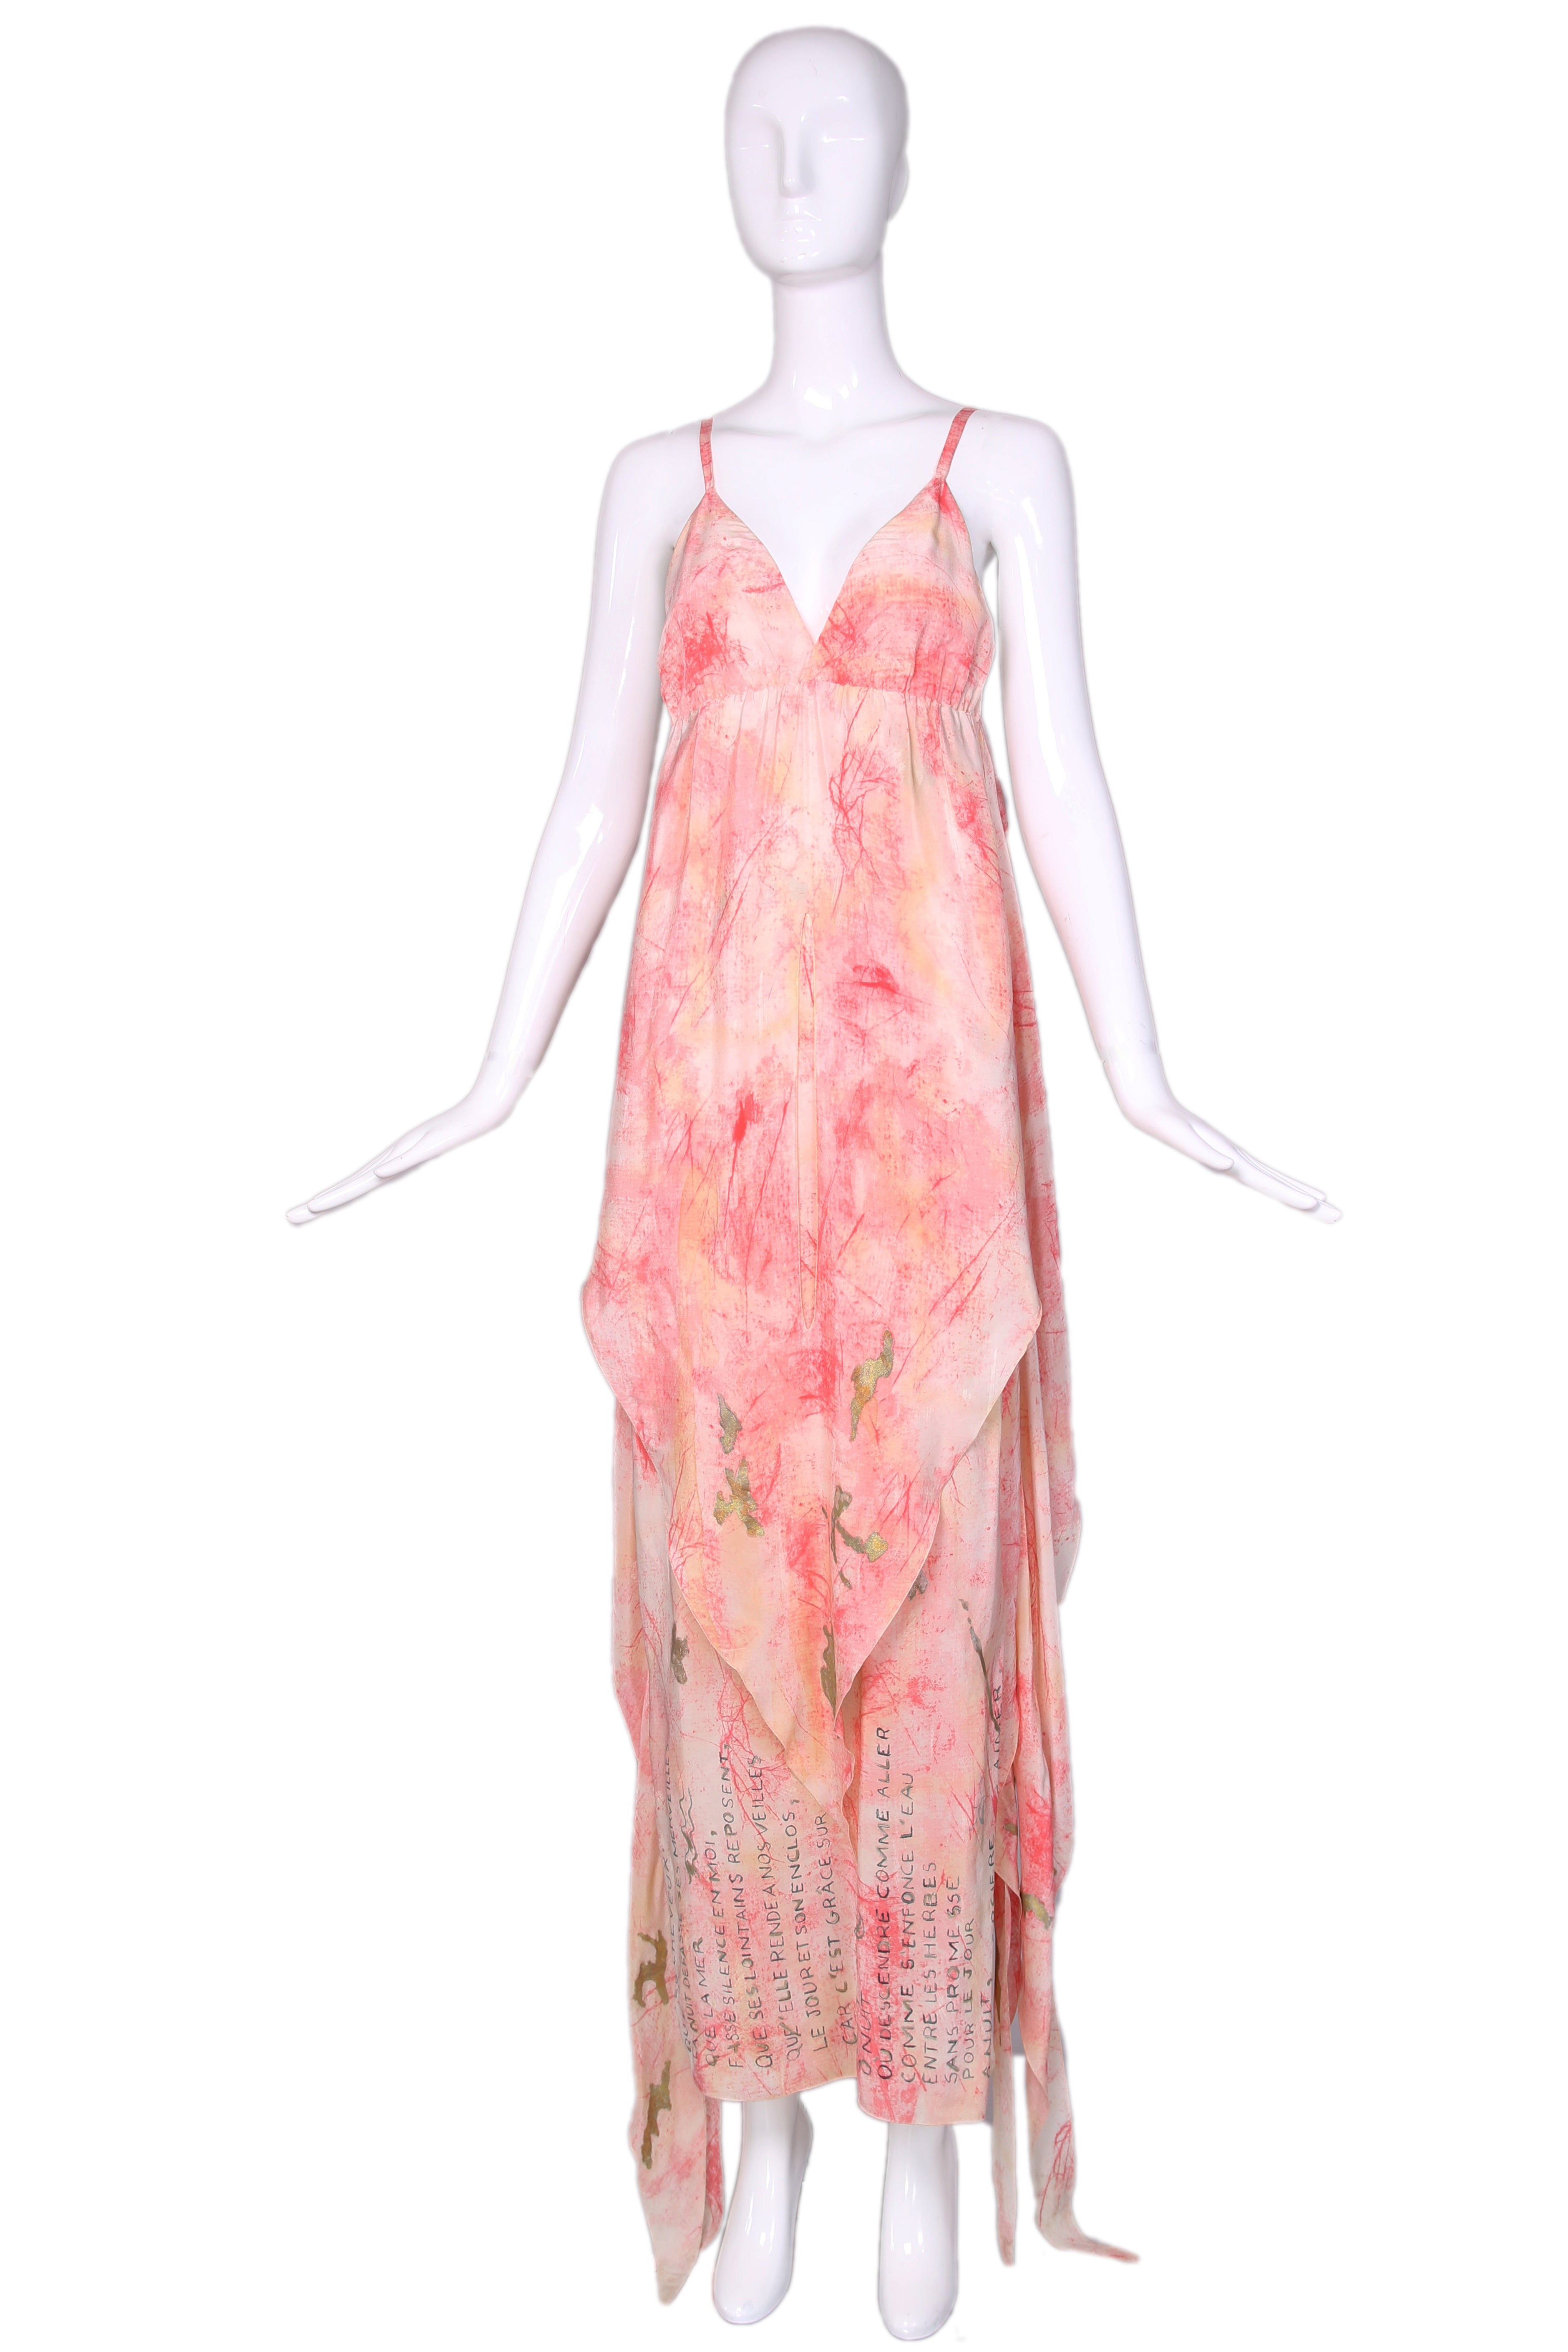 f17dcc2571 Vintage Chloe Hand Painted Silk Multi-Layered Gown w/Hand Written French  Print